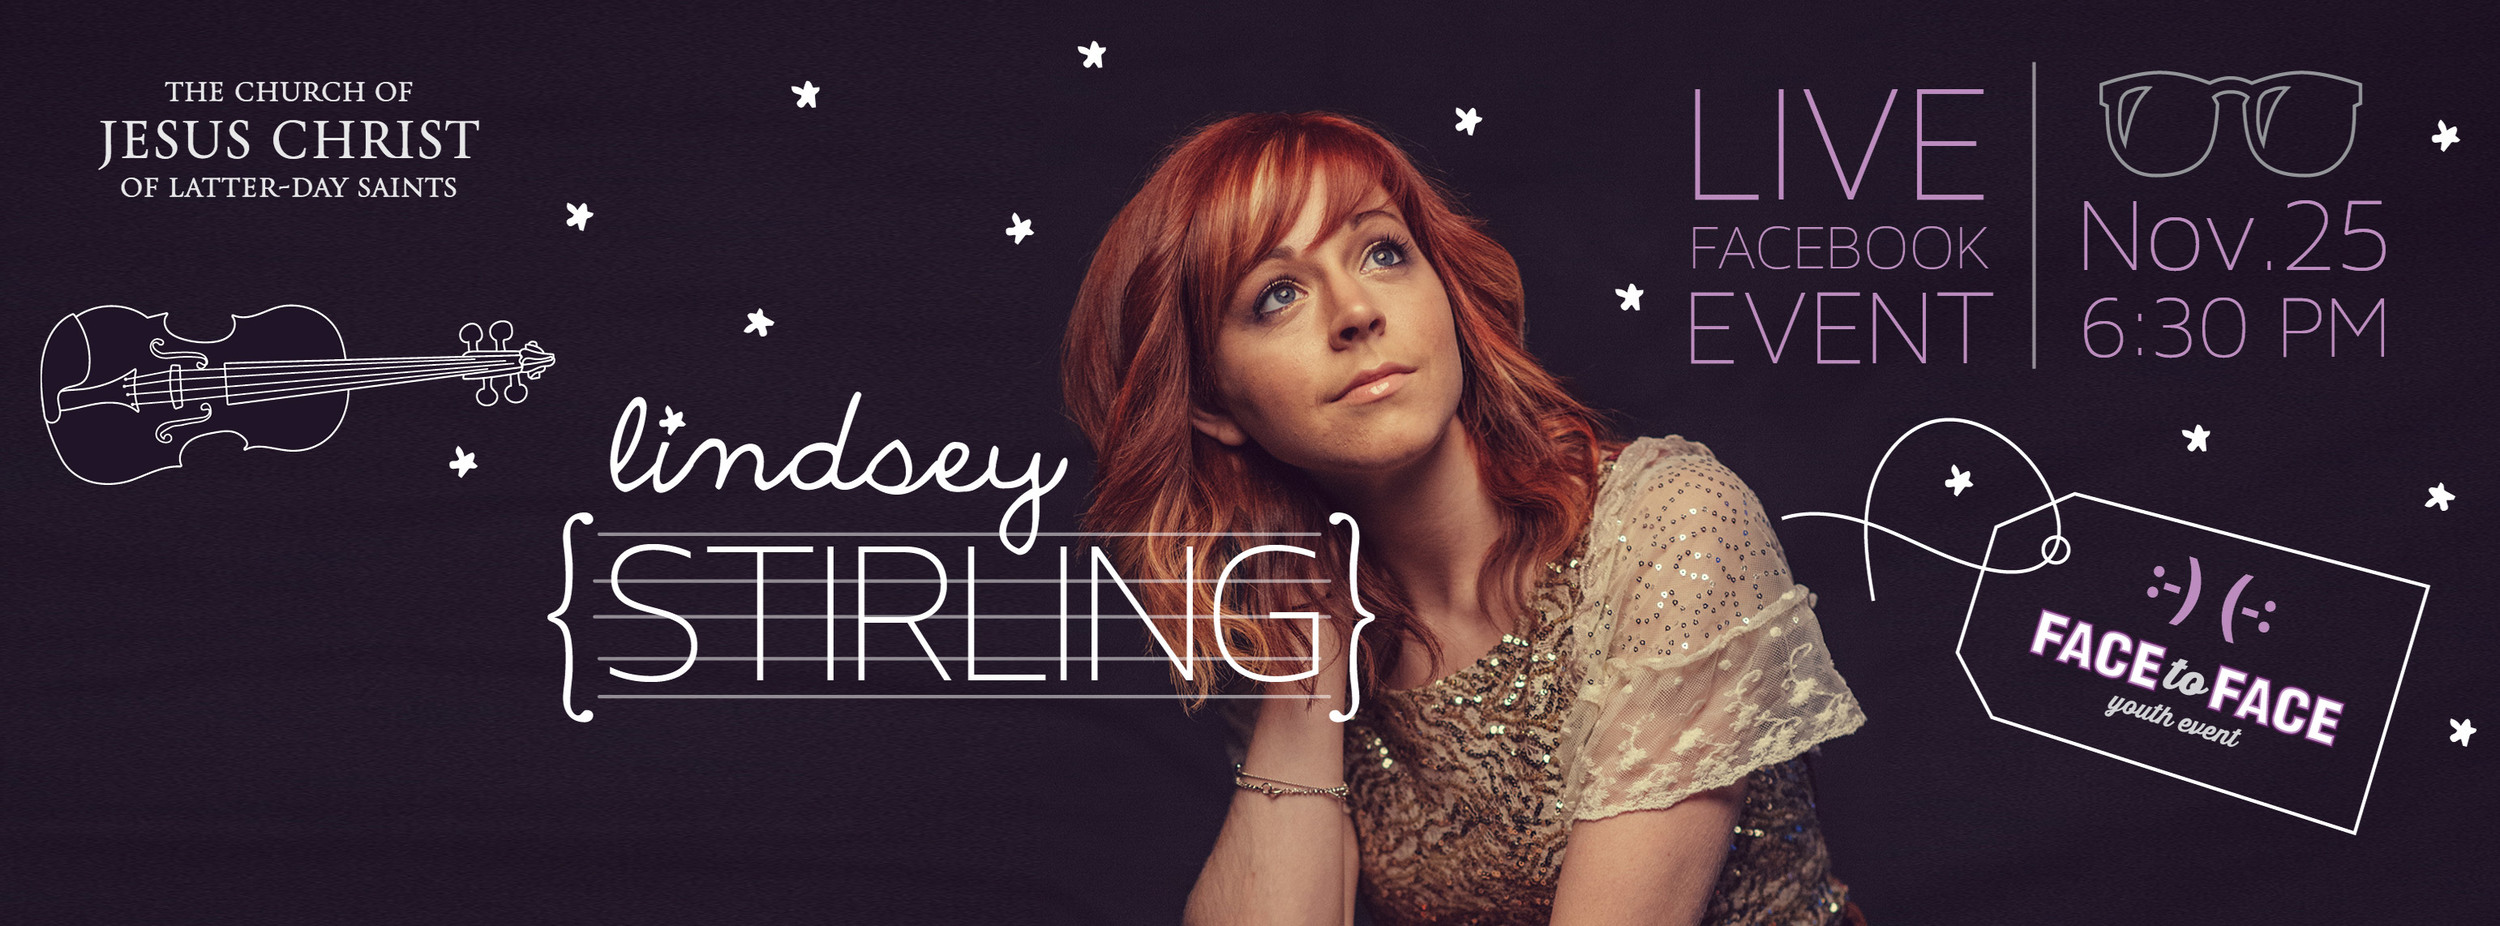 Chat with Lindsey Stirling in the LDSFace2Face November 25!